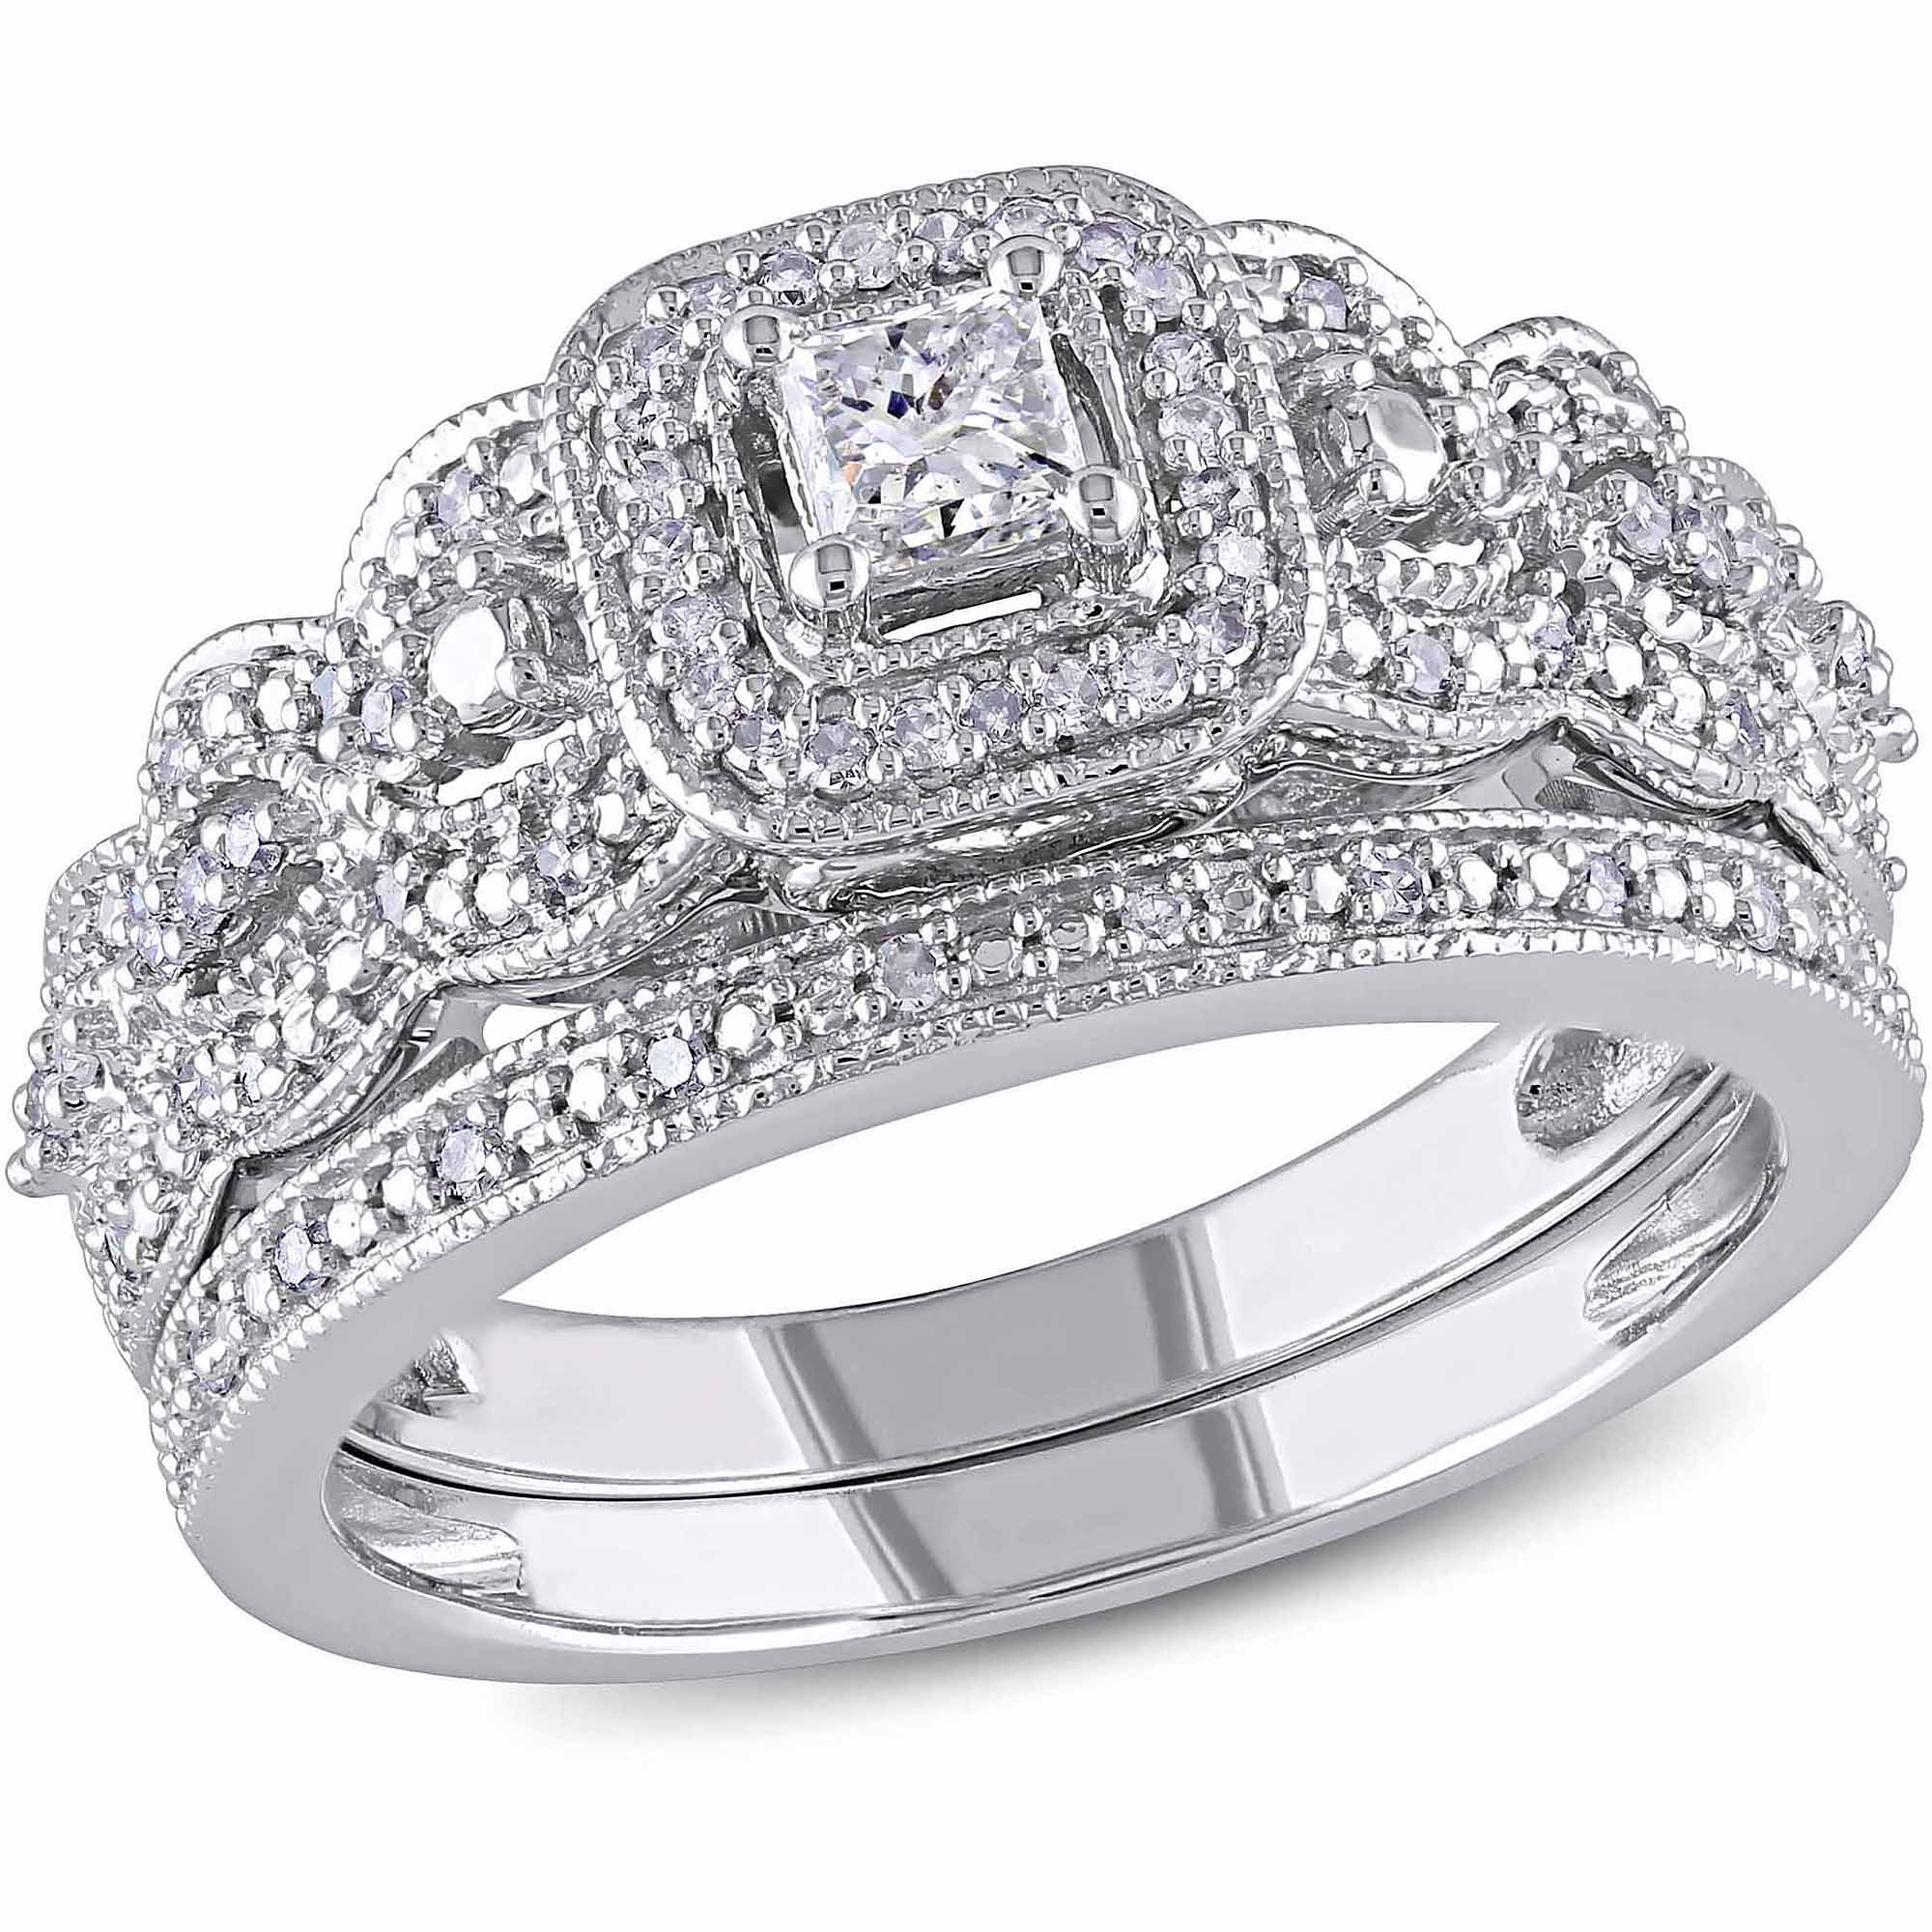 Miabella 1/2 Carat T.W. Princess and Round-Cut Diamond 14kt White Gold Bridal Set